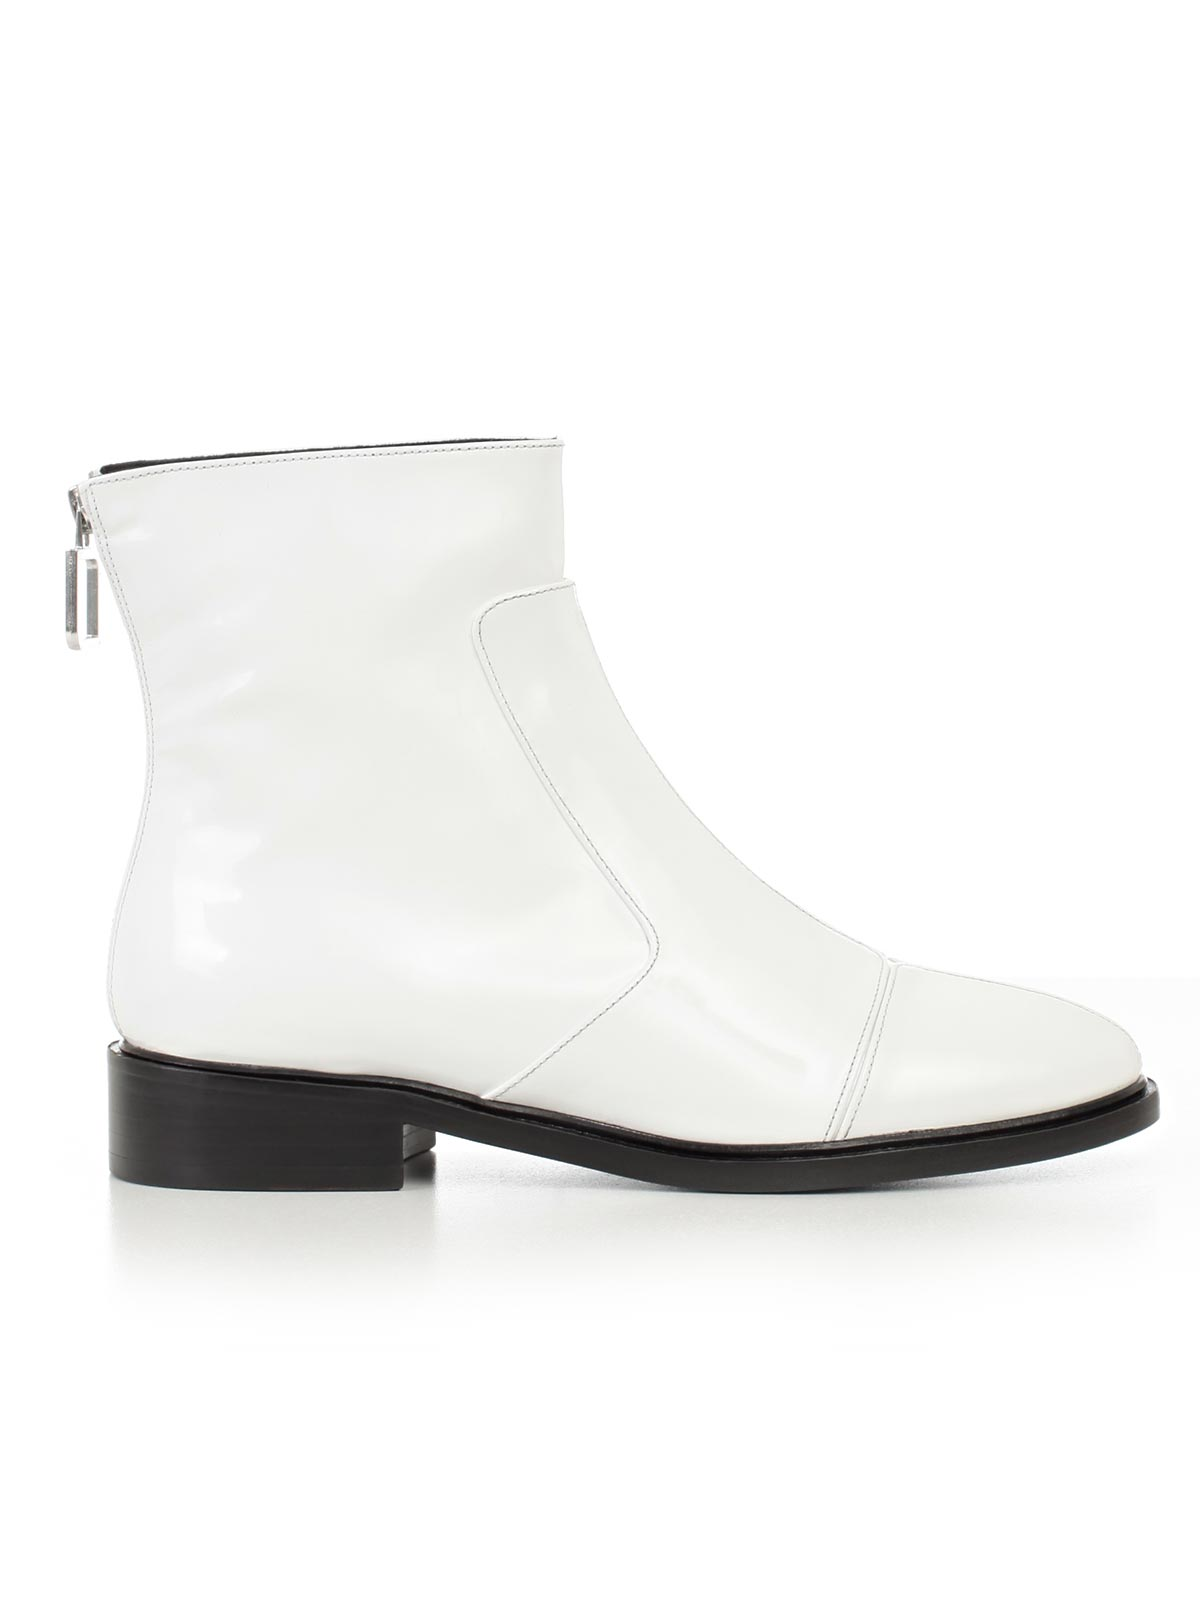 Picture of COURREGES FOOTWEAR STIVALE BASSO